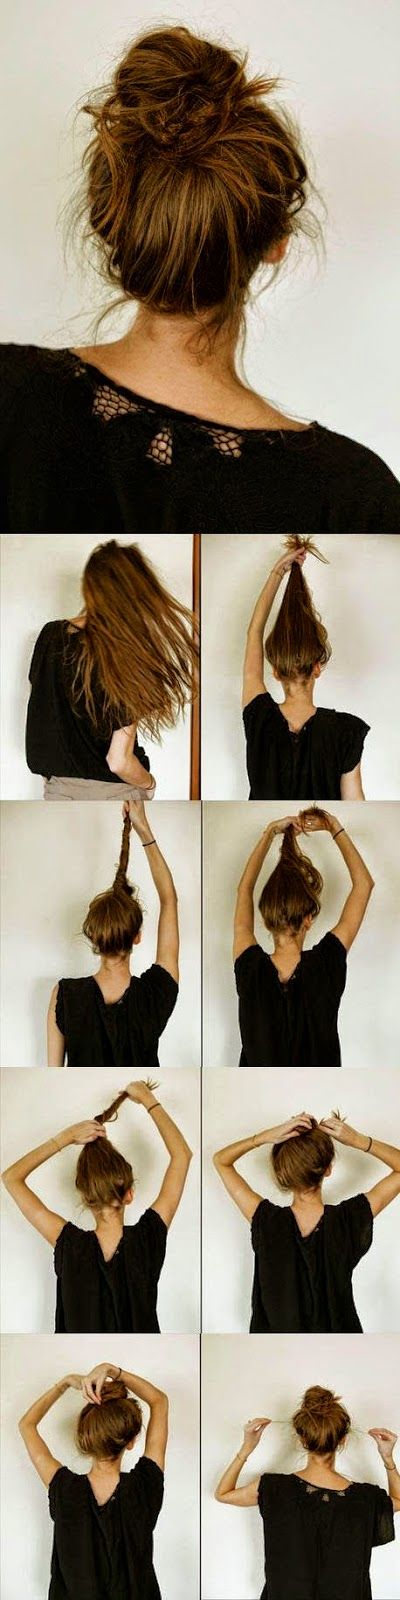 10-boho-hair-tutorial-for-the-season7